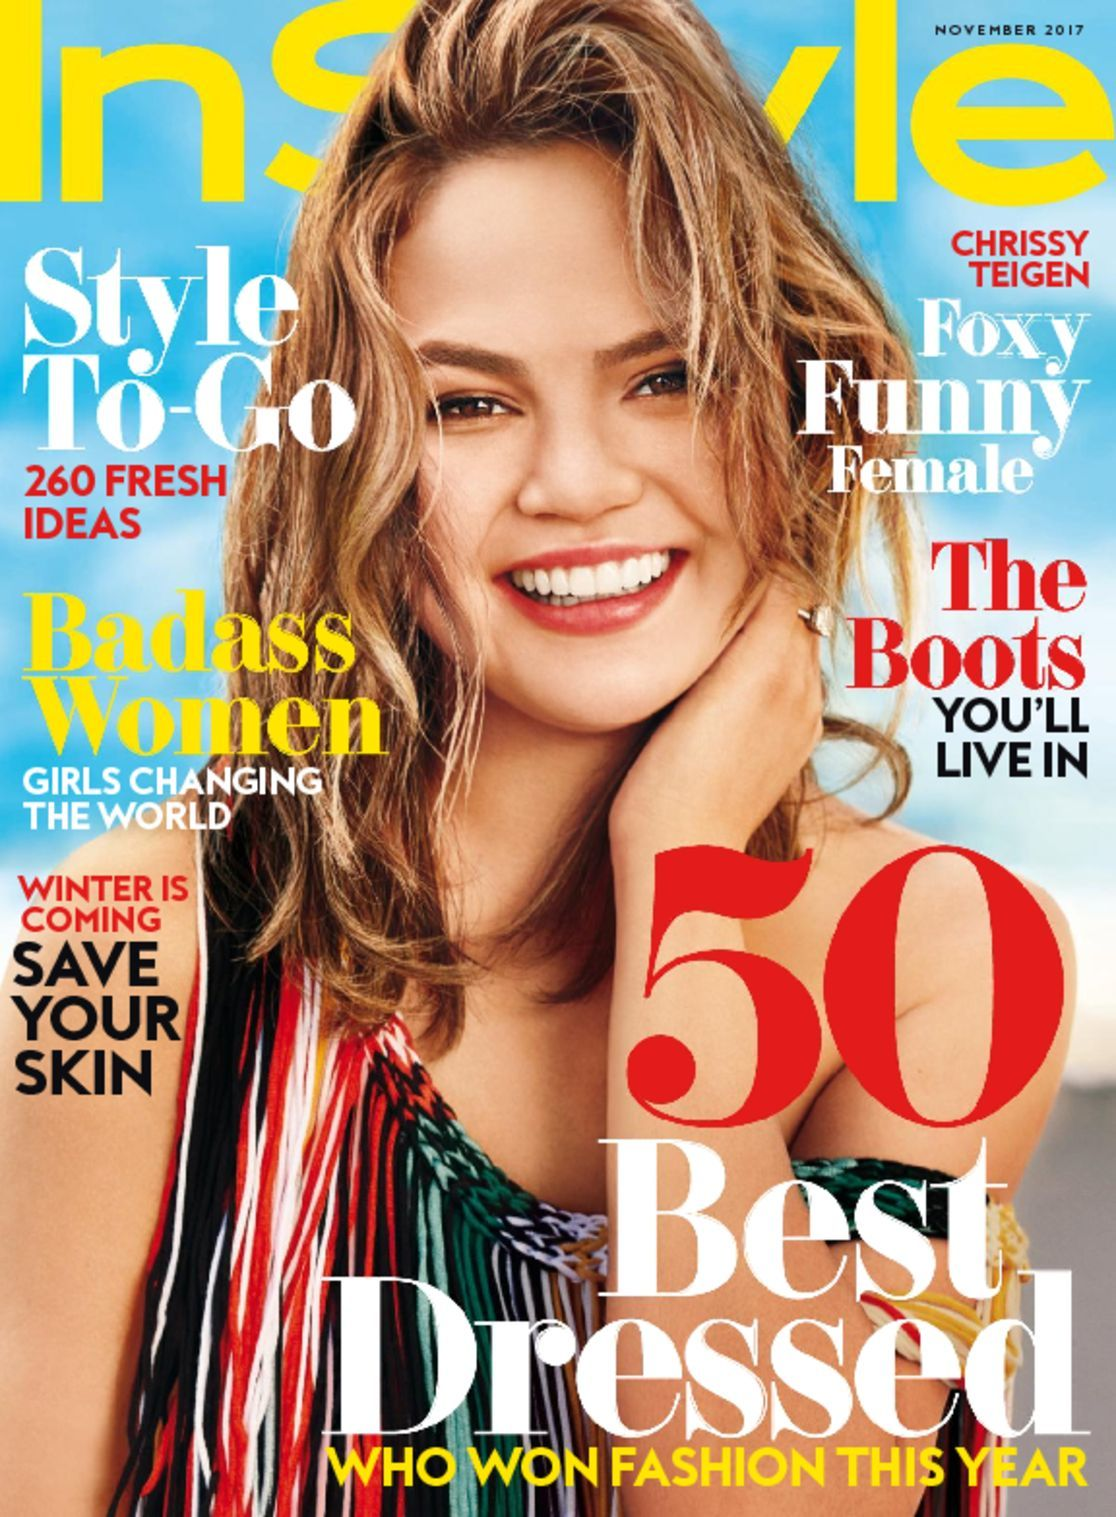 Instyle magazine is for people who like to keep up with celebrities and what they're doing. Packed with the latest celebrity news, Instyle keeps you up-to-date .